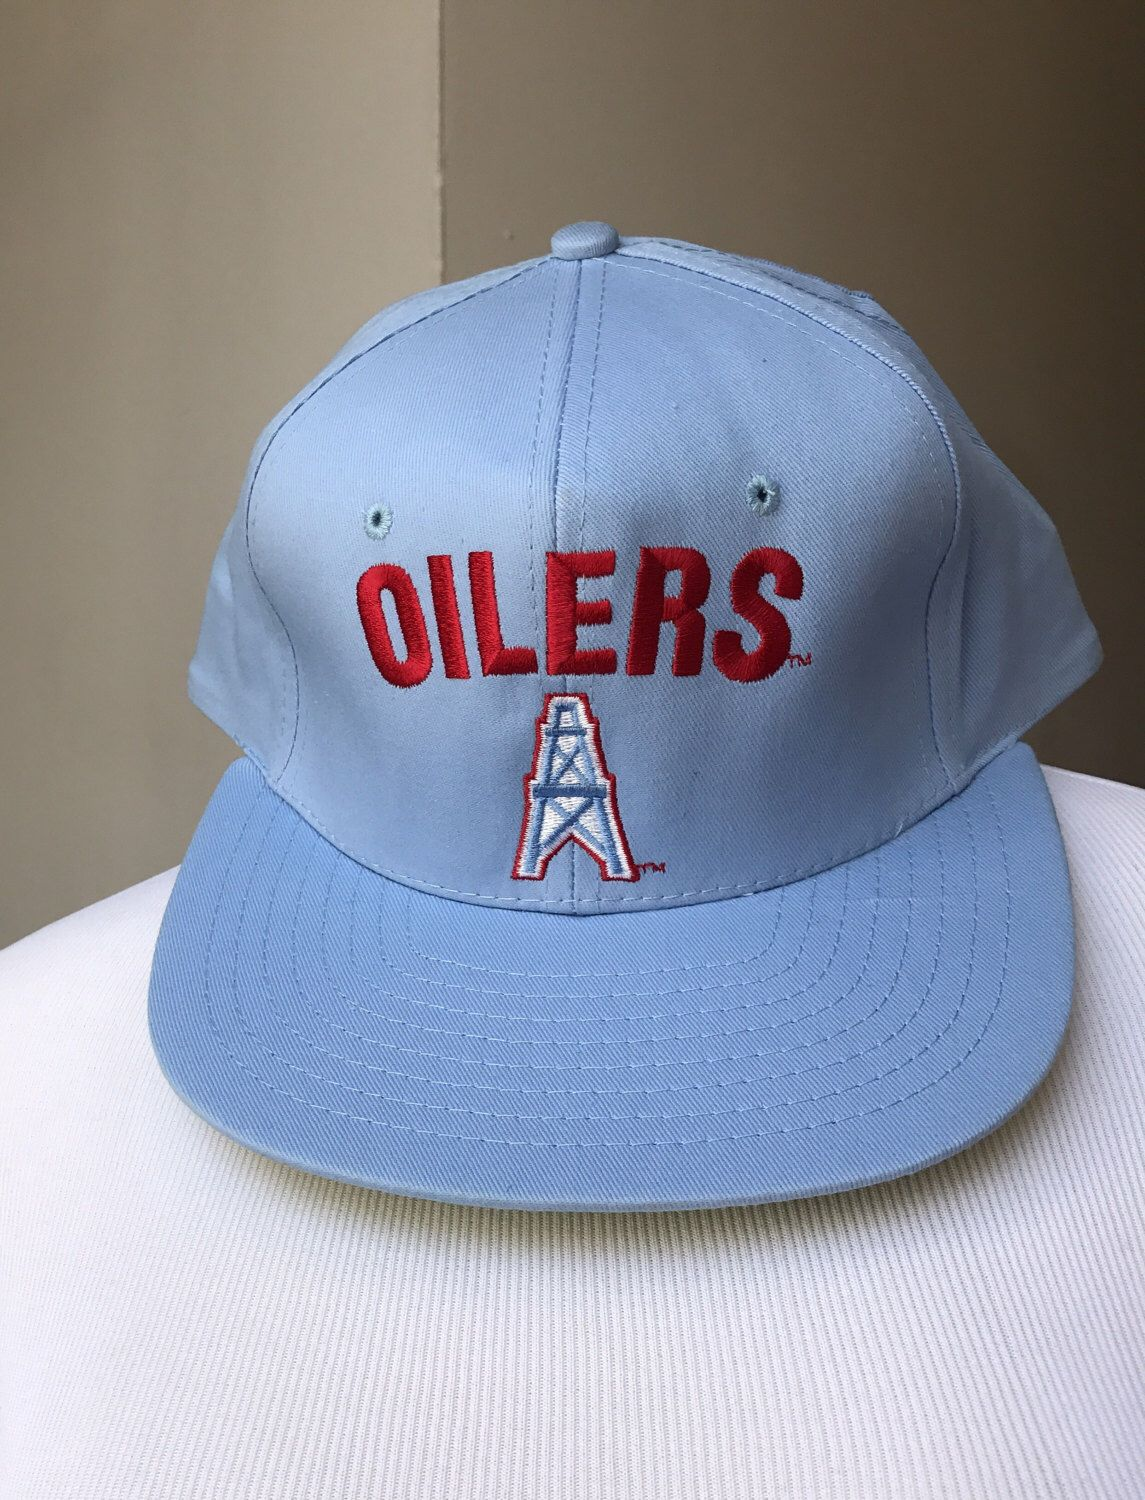 bf54a7abe90af5 Vintage Houston Oilers Hat | Baby Blue Oilers Football NFL Hat |  Discontinued Team | Collectible